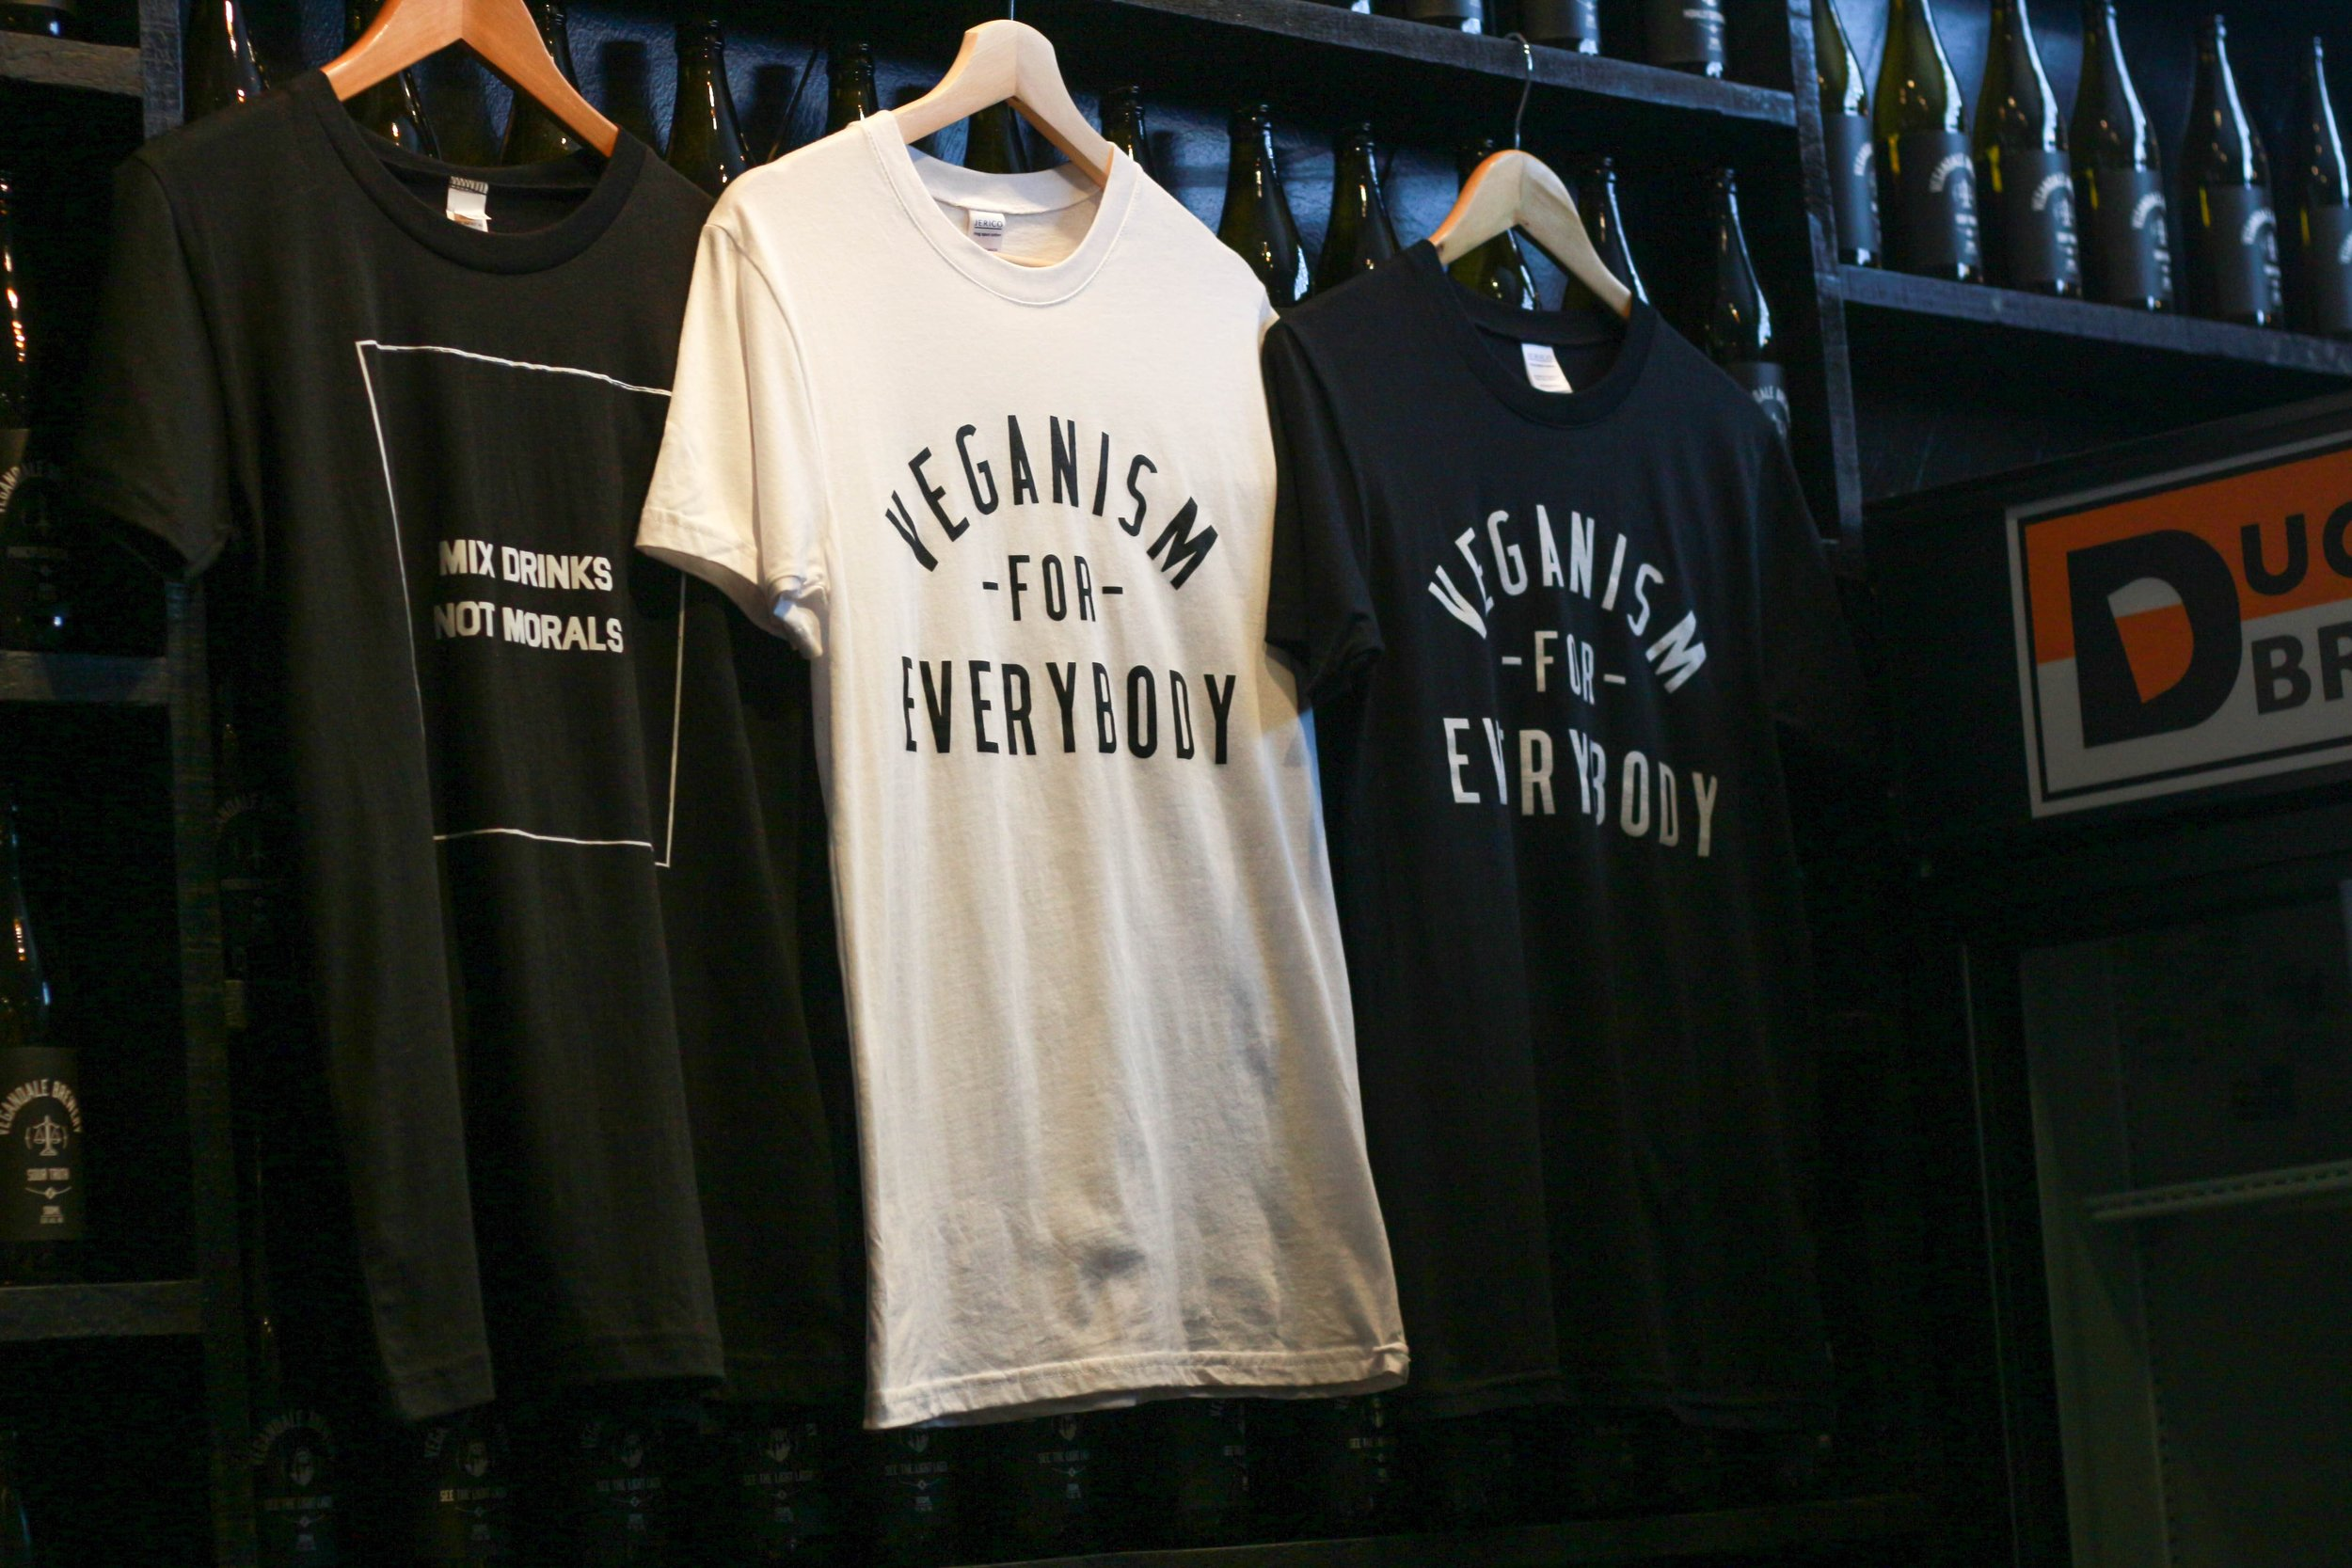 The Vegandale collective proudly displays their slogan on branded merchandise at the front counter of Vegandale Brewery on Queen Street West. (The Unaffiliated Press/Kayla Zhu)